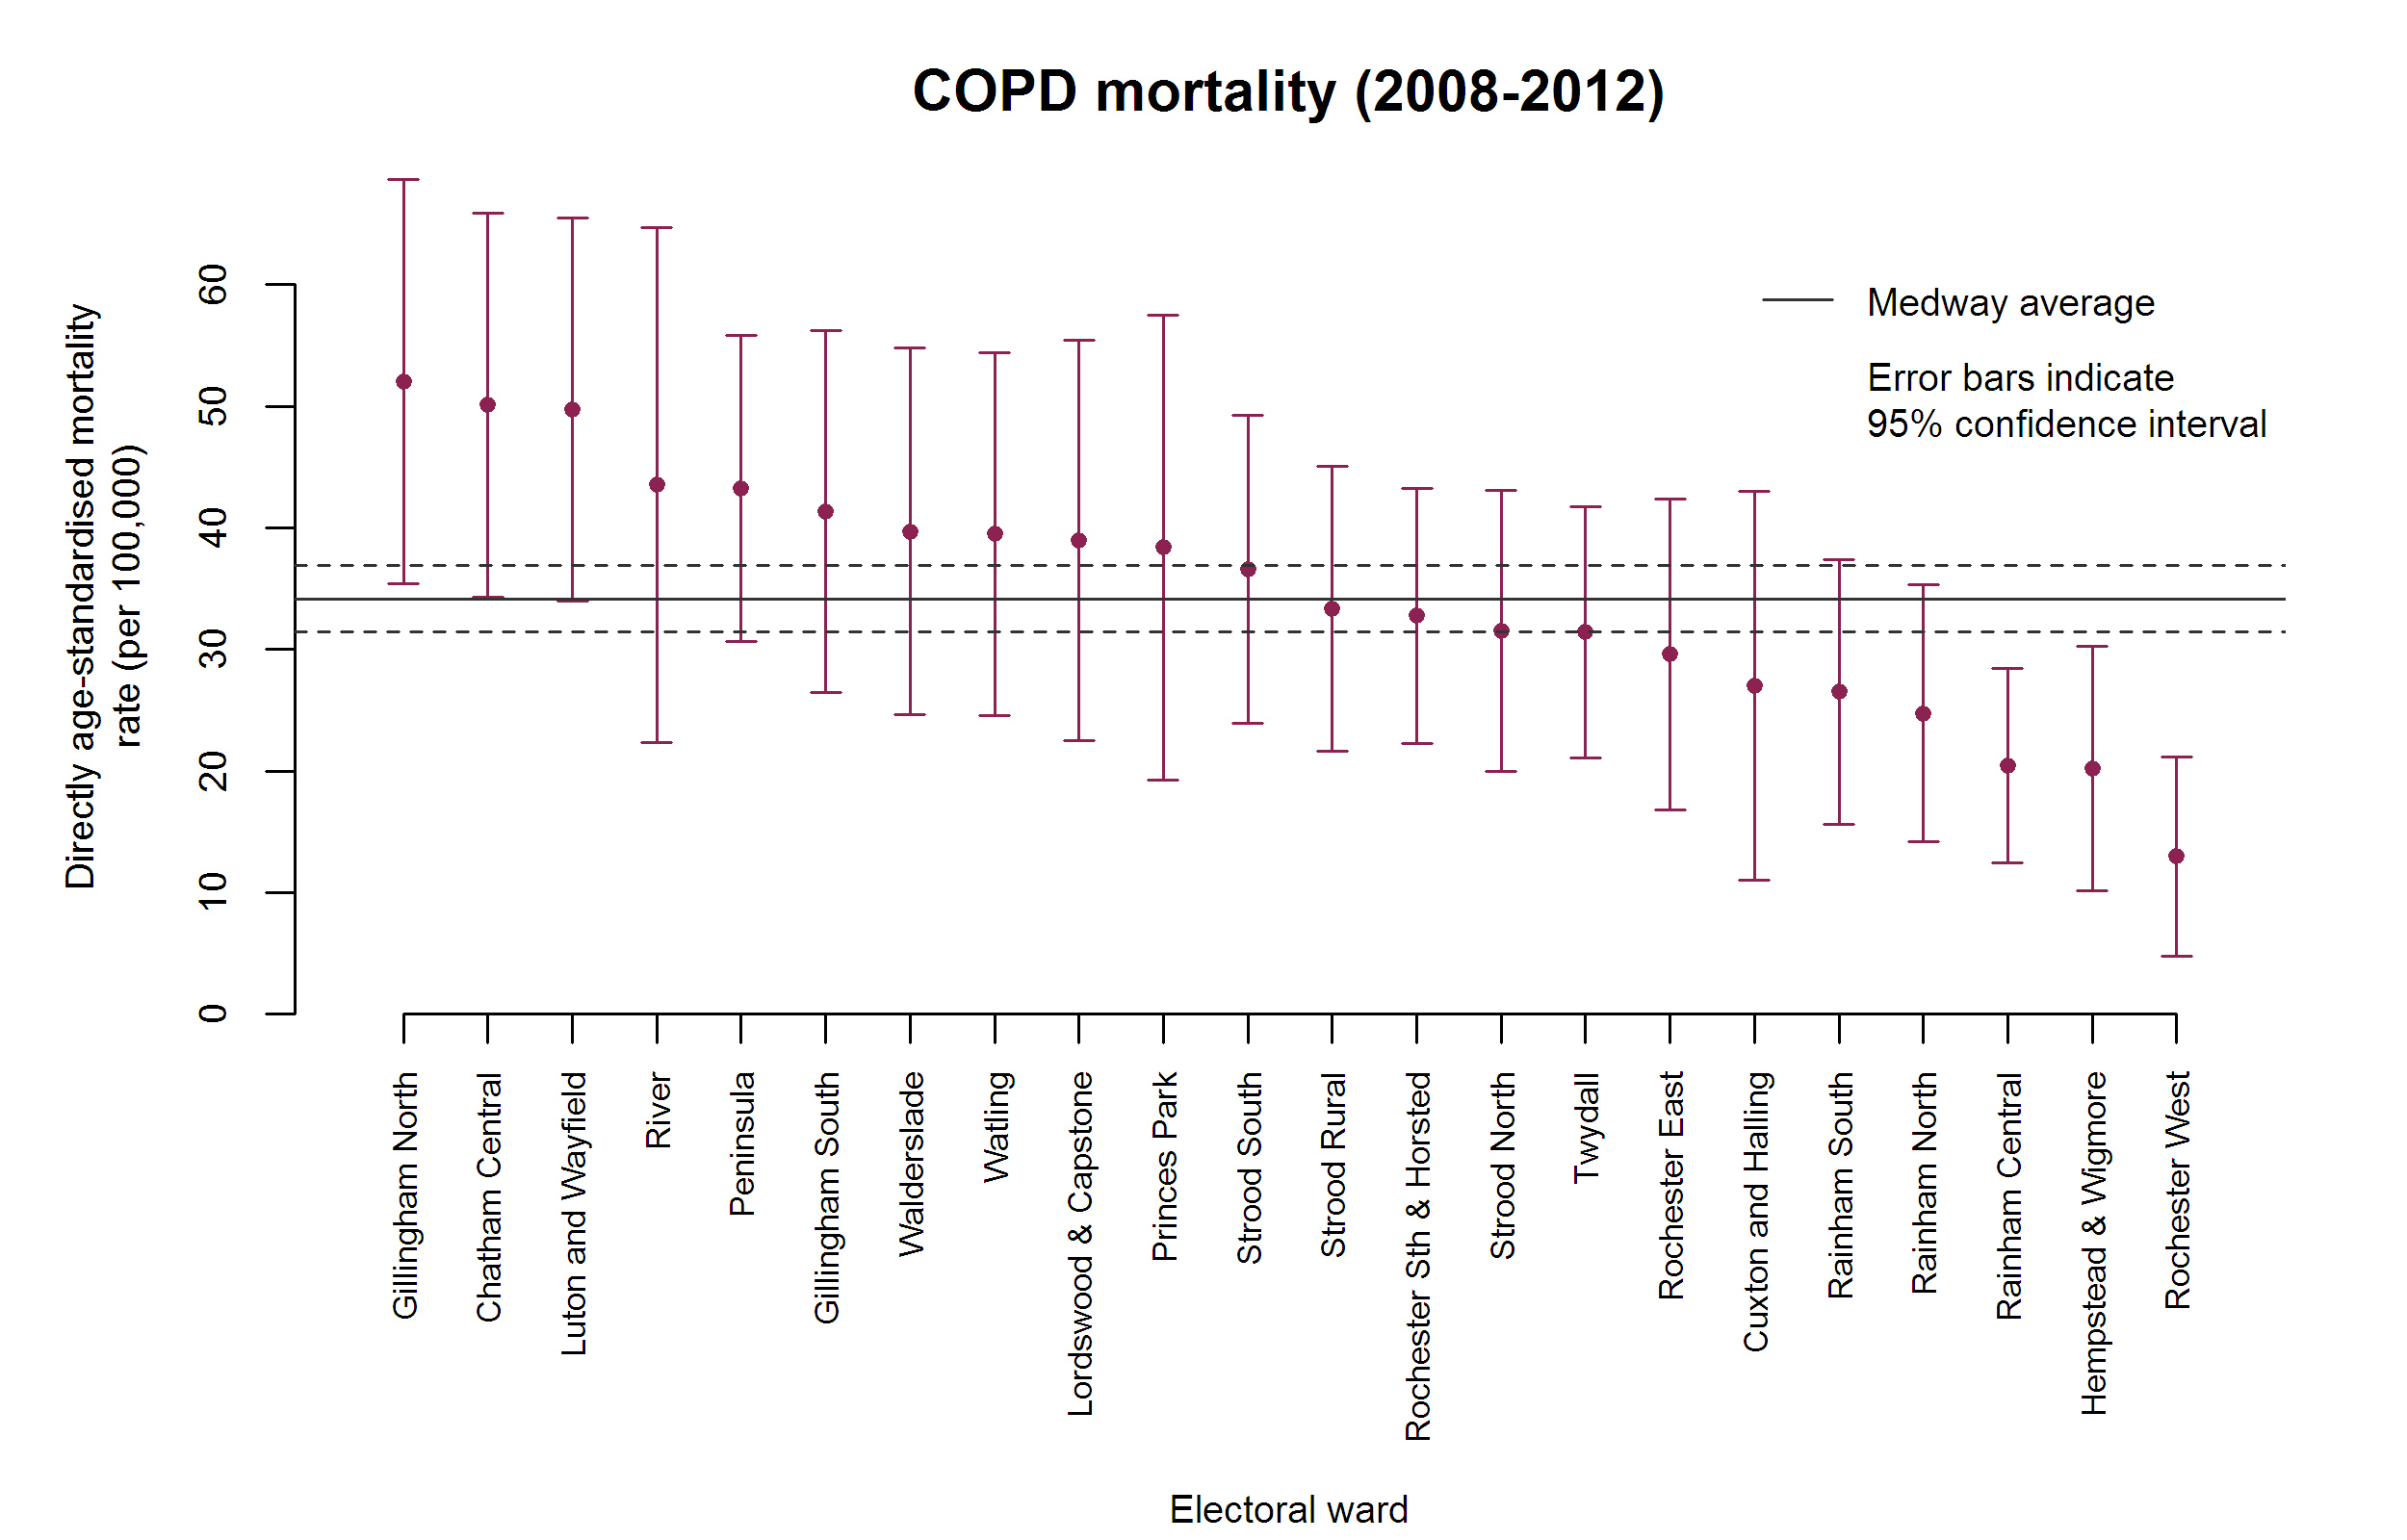 Figure 4: COPD mortality by ward